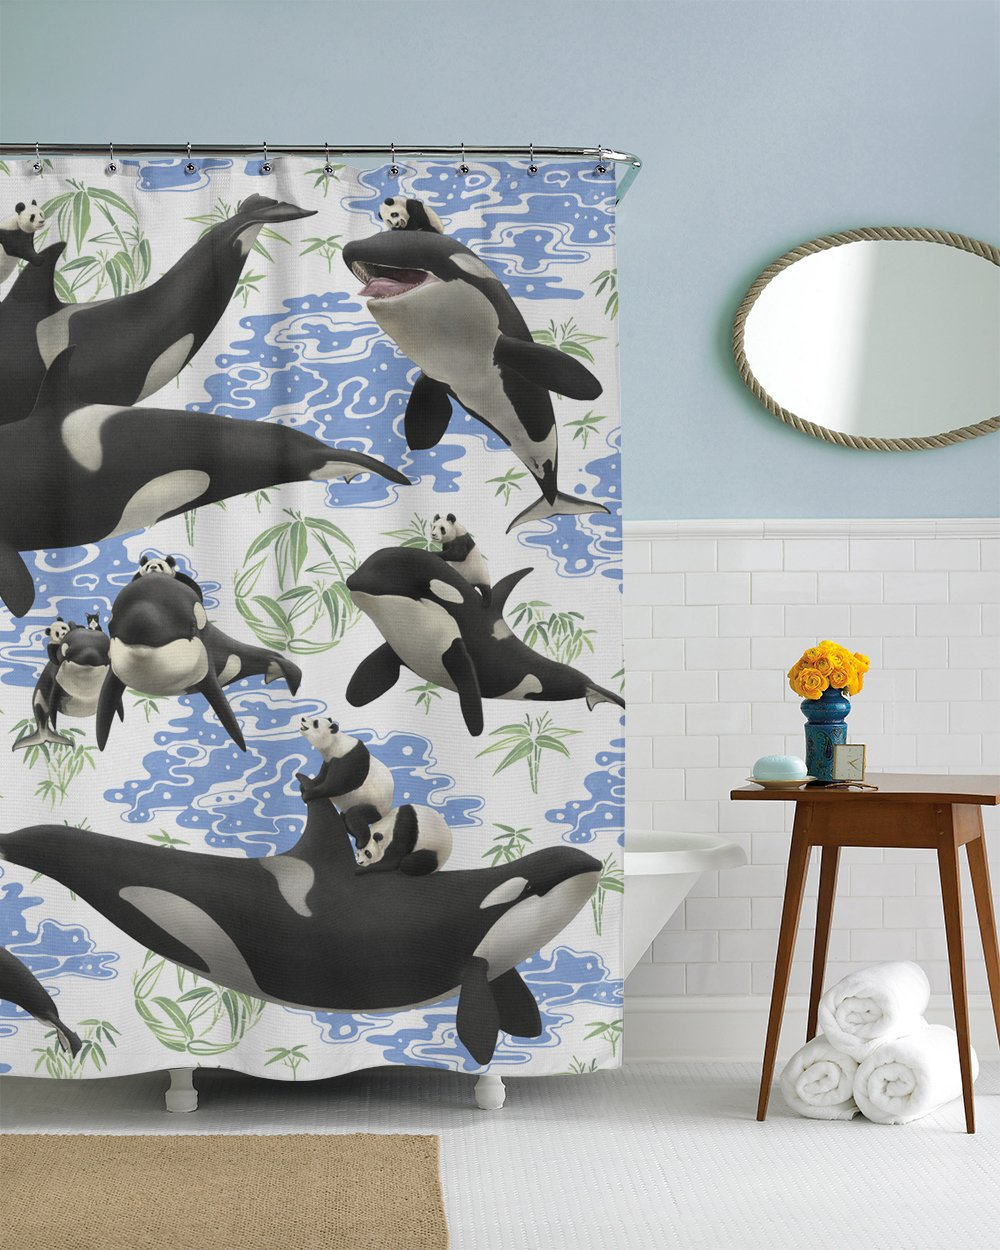 Rabbits Riding Manatees Fabric Shower Curtain Boho Chic Art 75 Inches Long 12 Hooks Included COMIN18JU004078